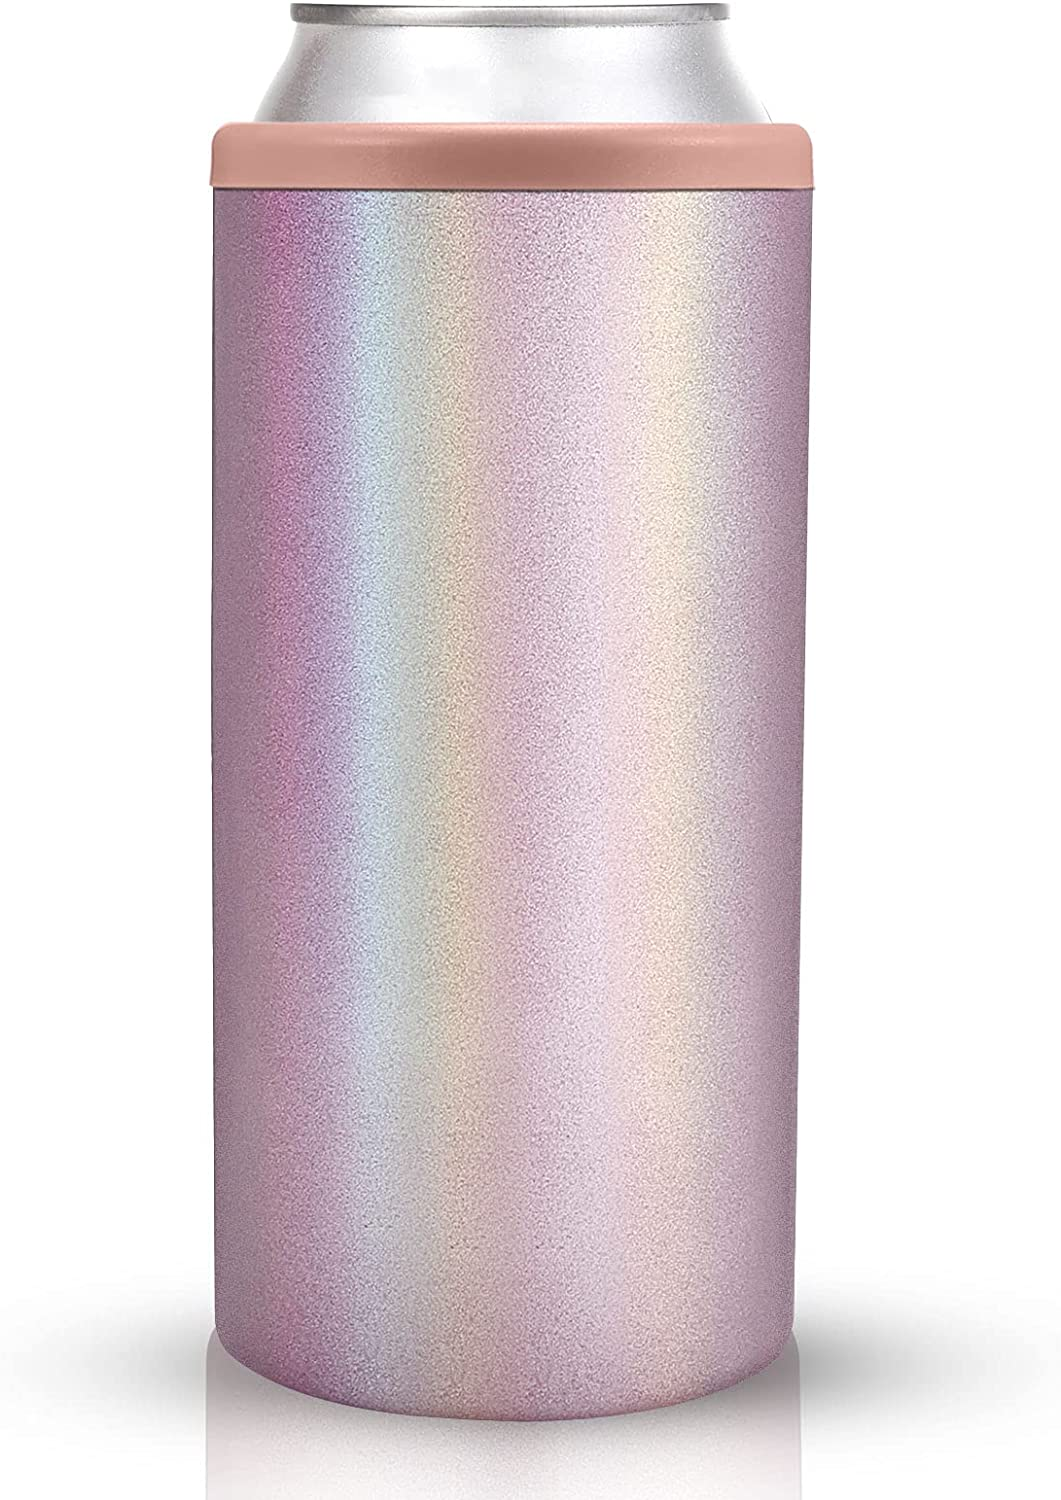 Sursip Stainless Steel Insulated Slim Can Cooler For 12 Oz,Double-walled Vacuum Stainless Steel Can Cooler Holder For Beer/Soda/Beverage/Energy Drinks Skinny Cans Keeper -Glitter Rose Gold